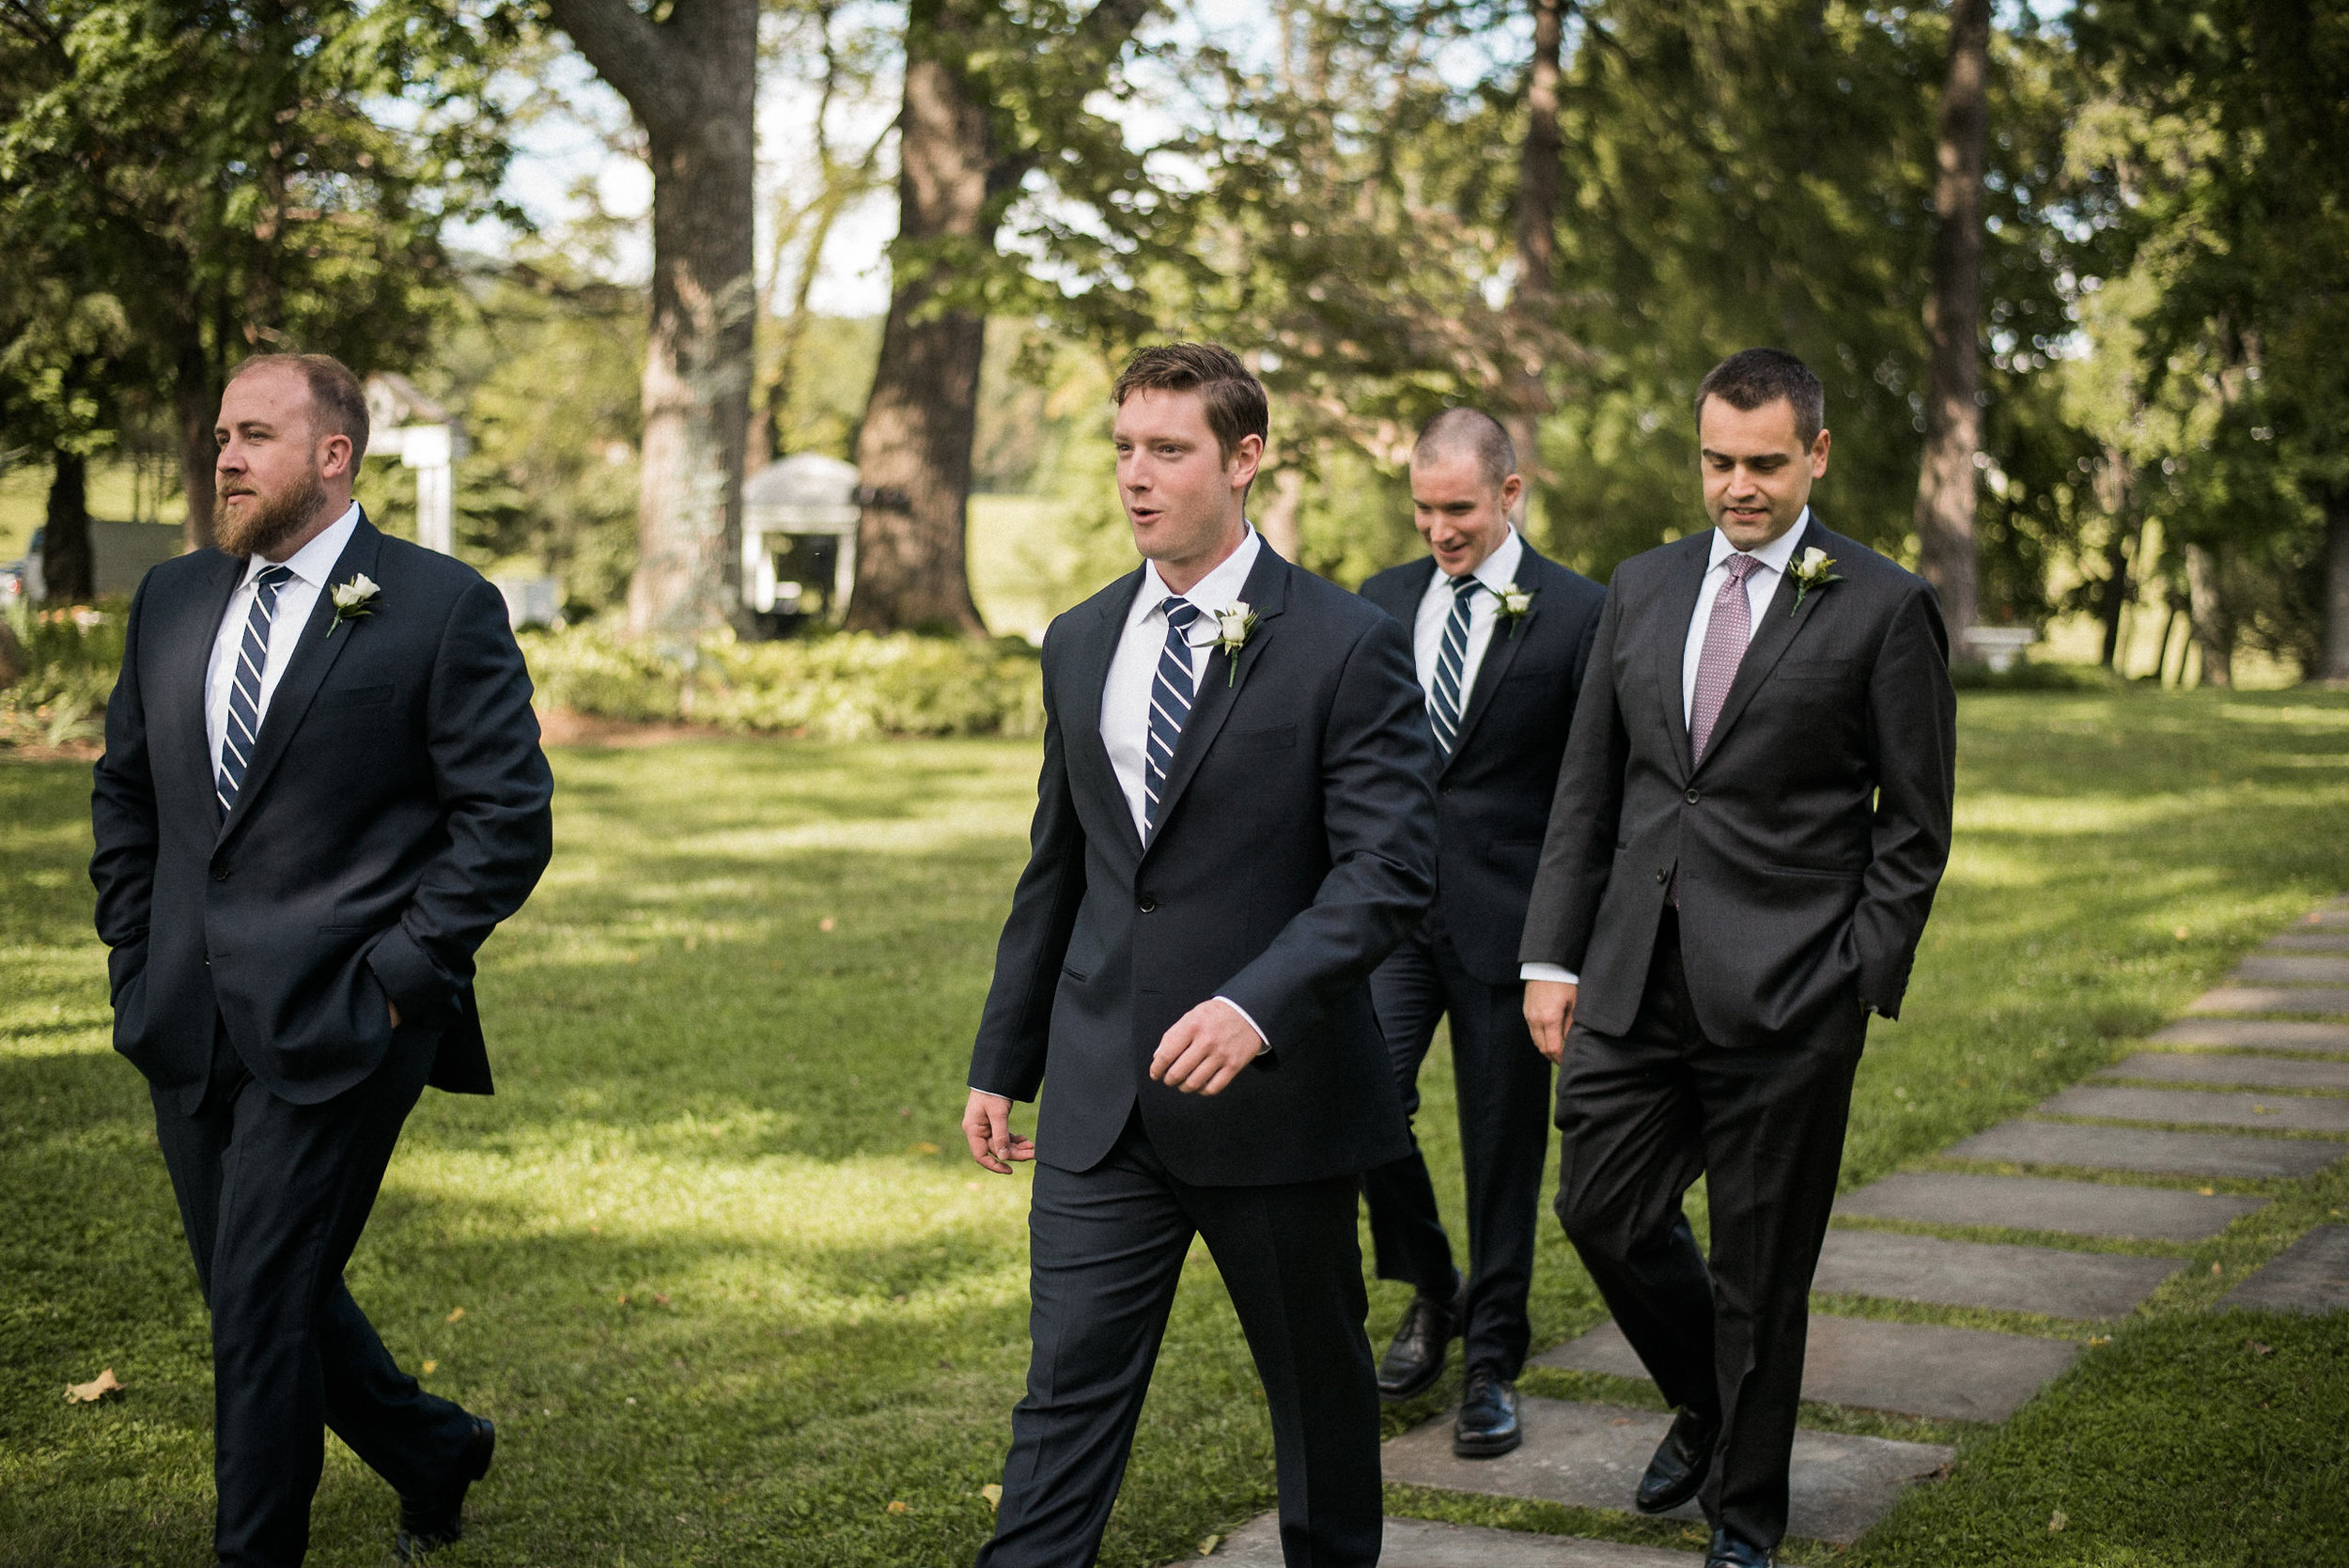 Groom and groomsmen walking across lawn